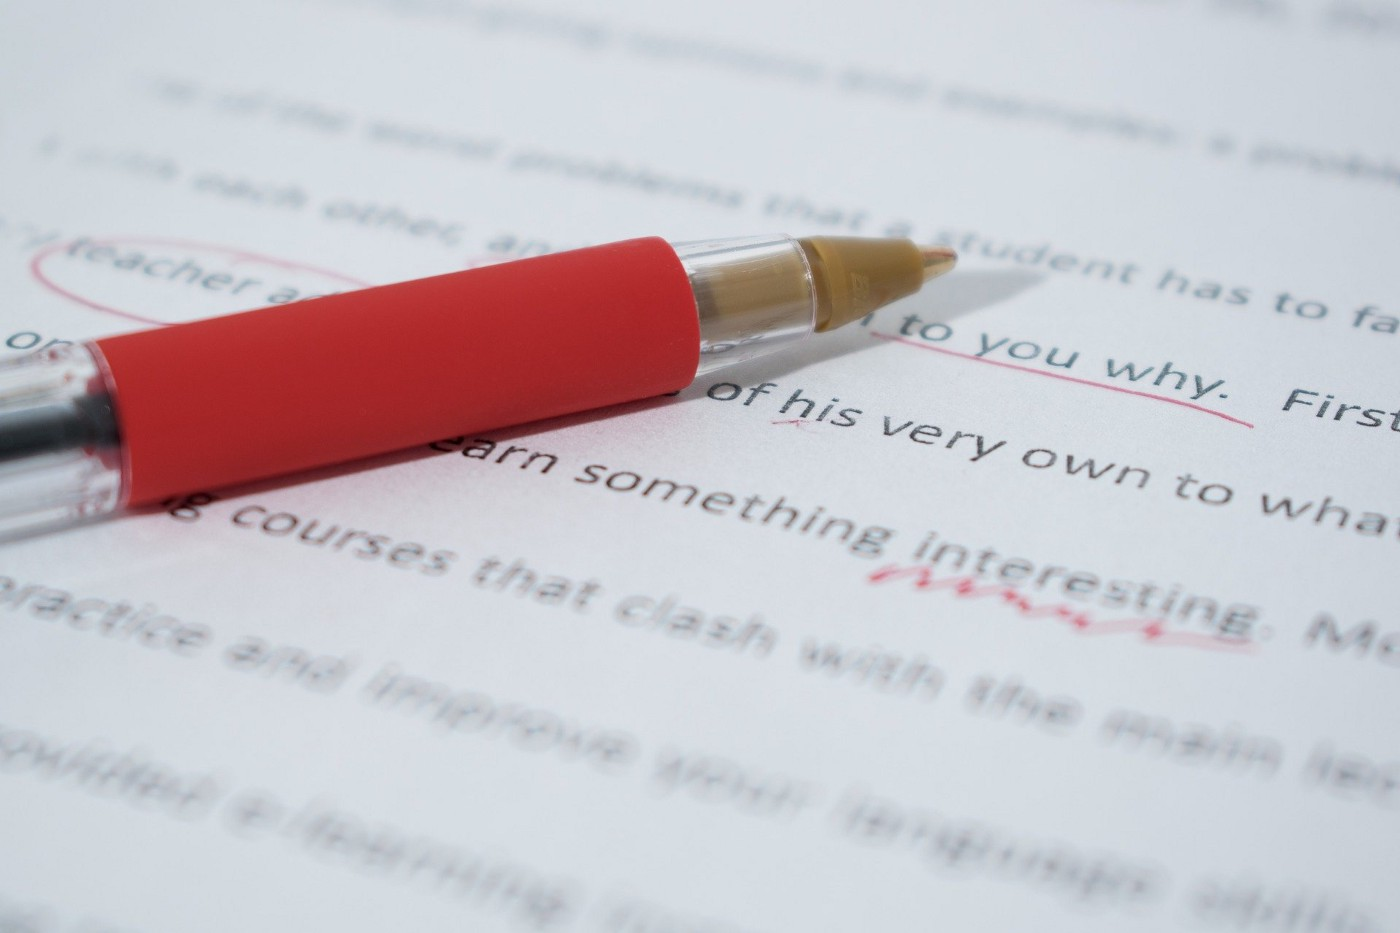 A pen on a manuscript being edited.